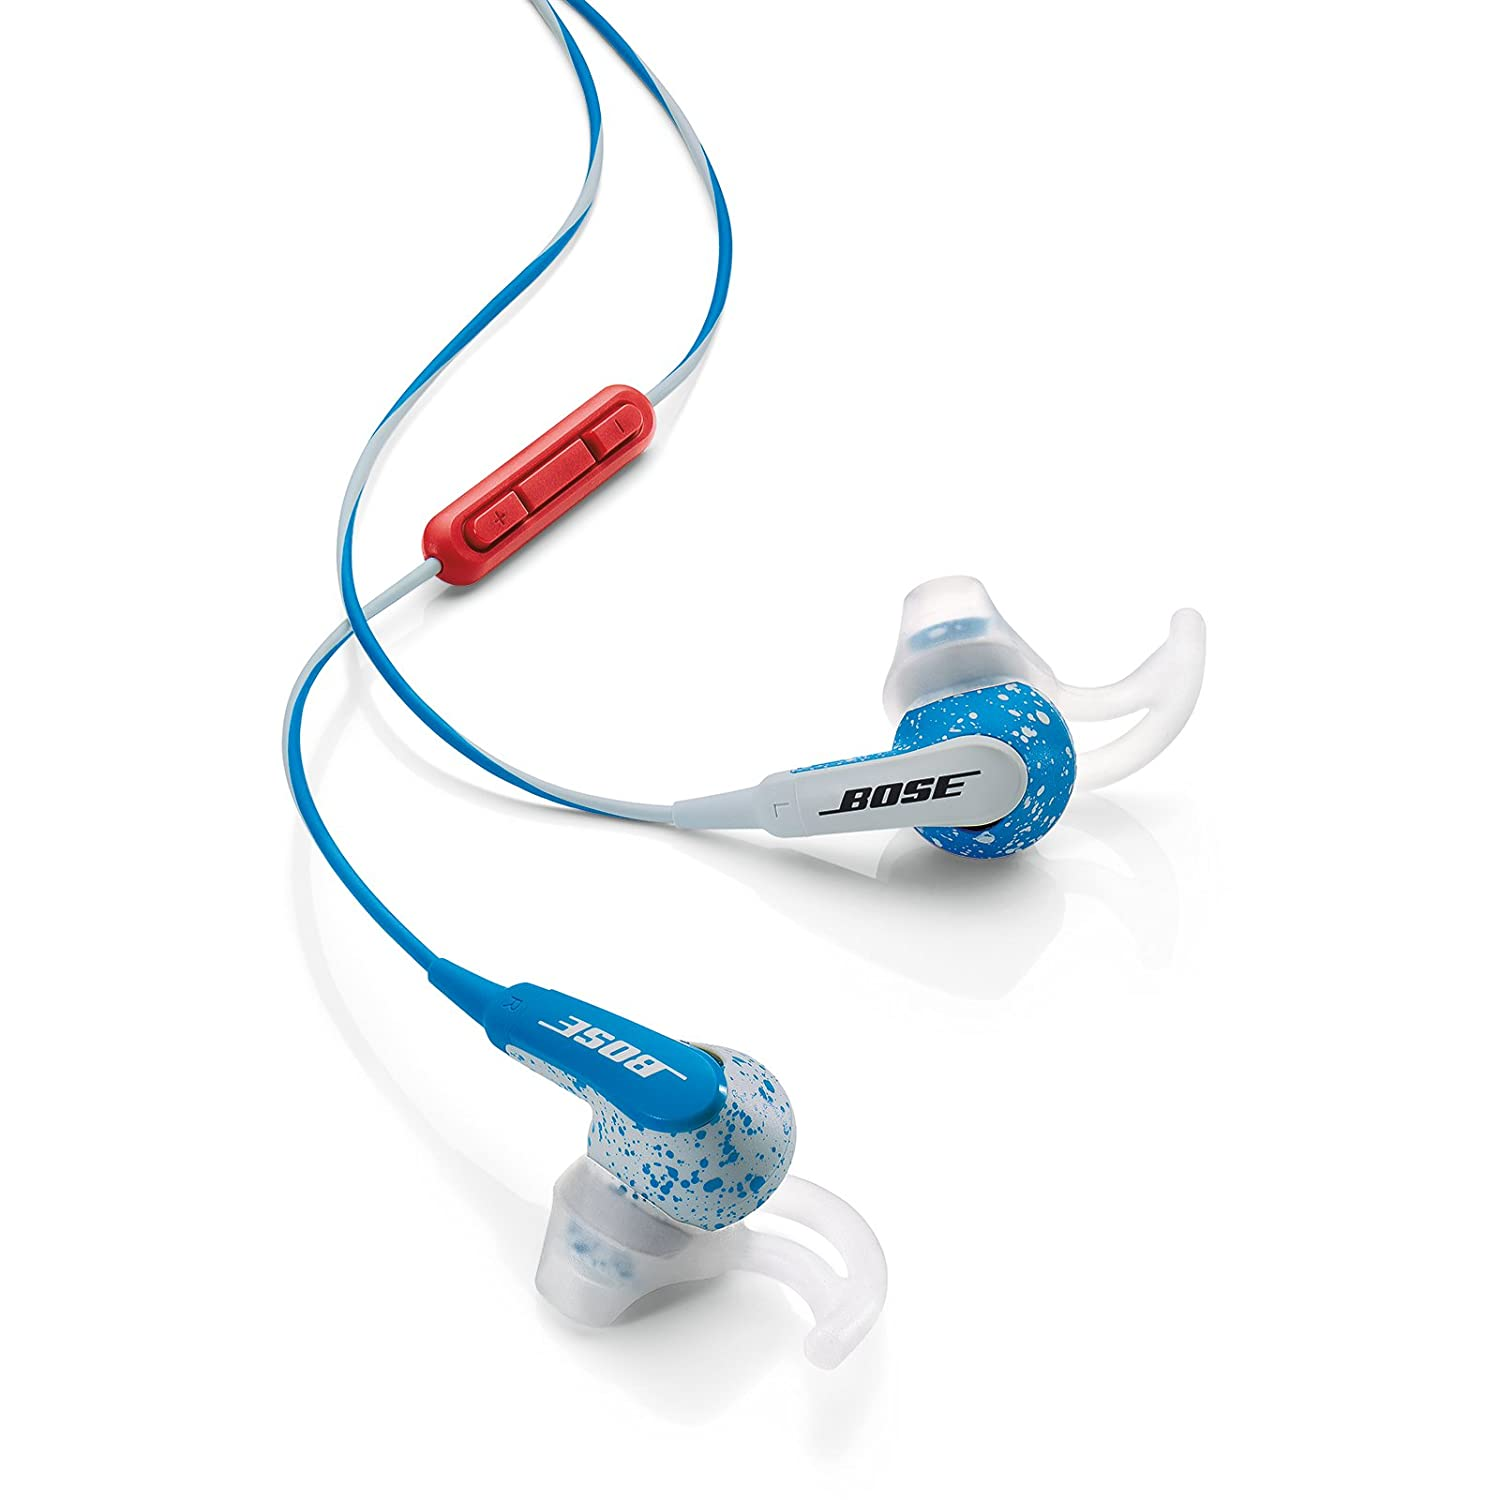 Bose working out earbuds